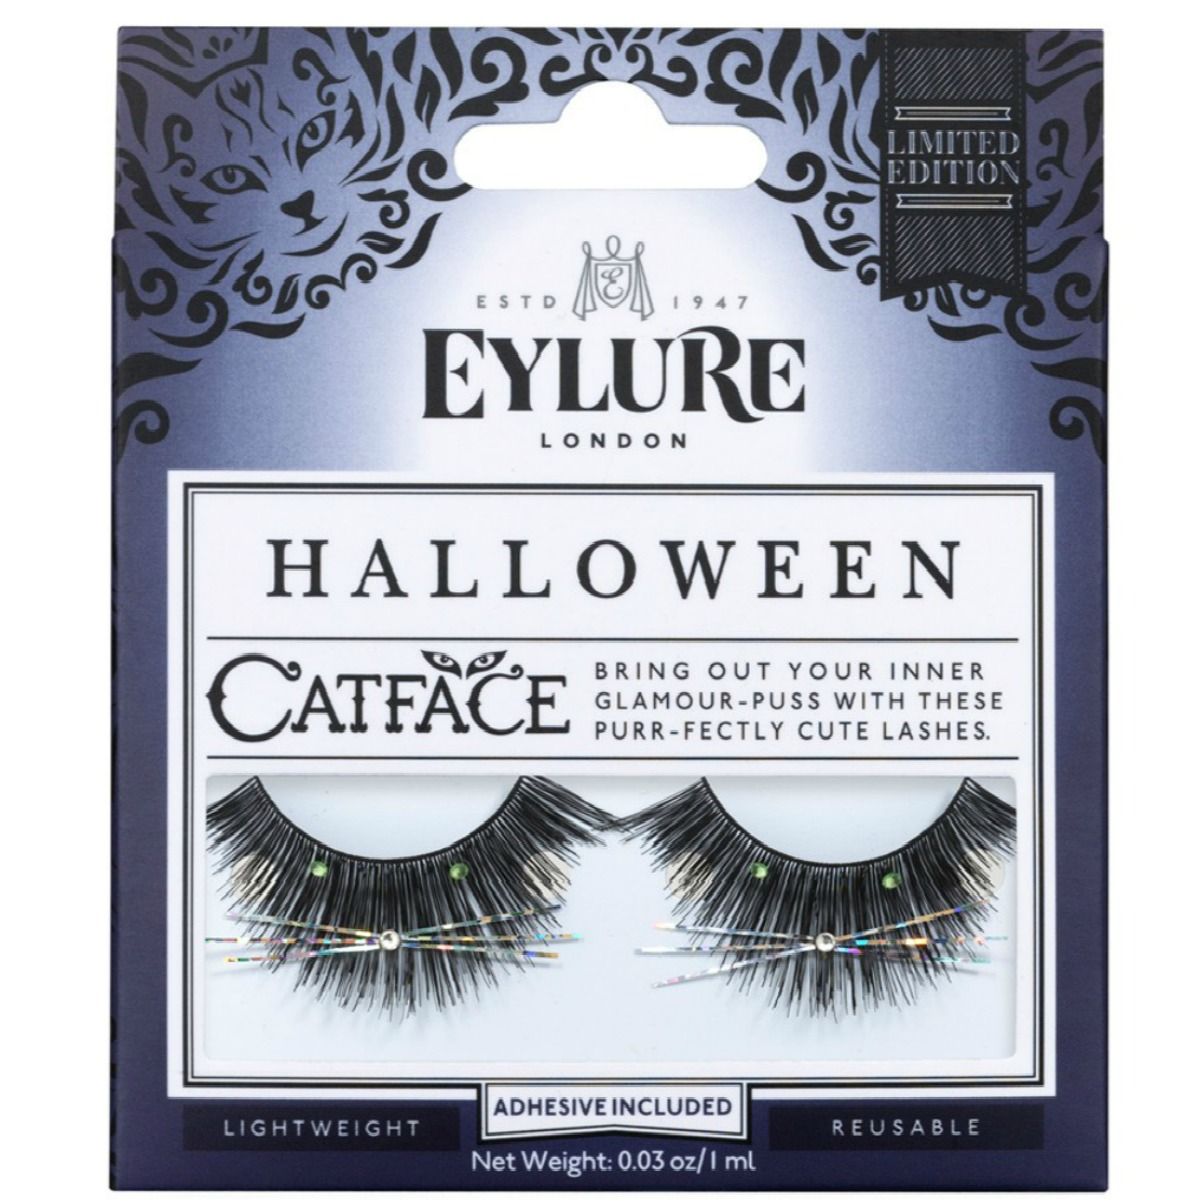 Eylure Halloween Cat Face False Eyelashes